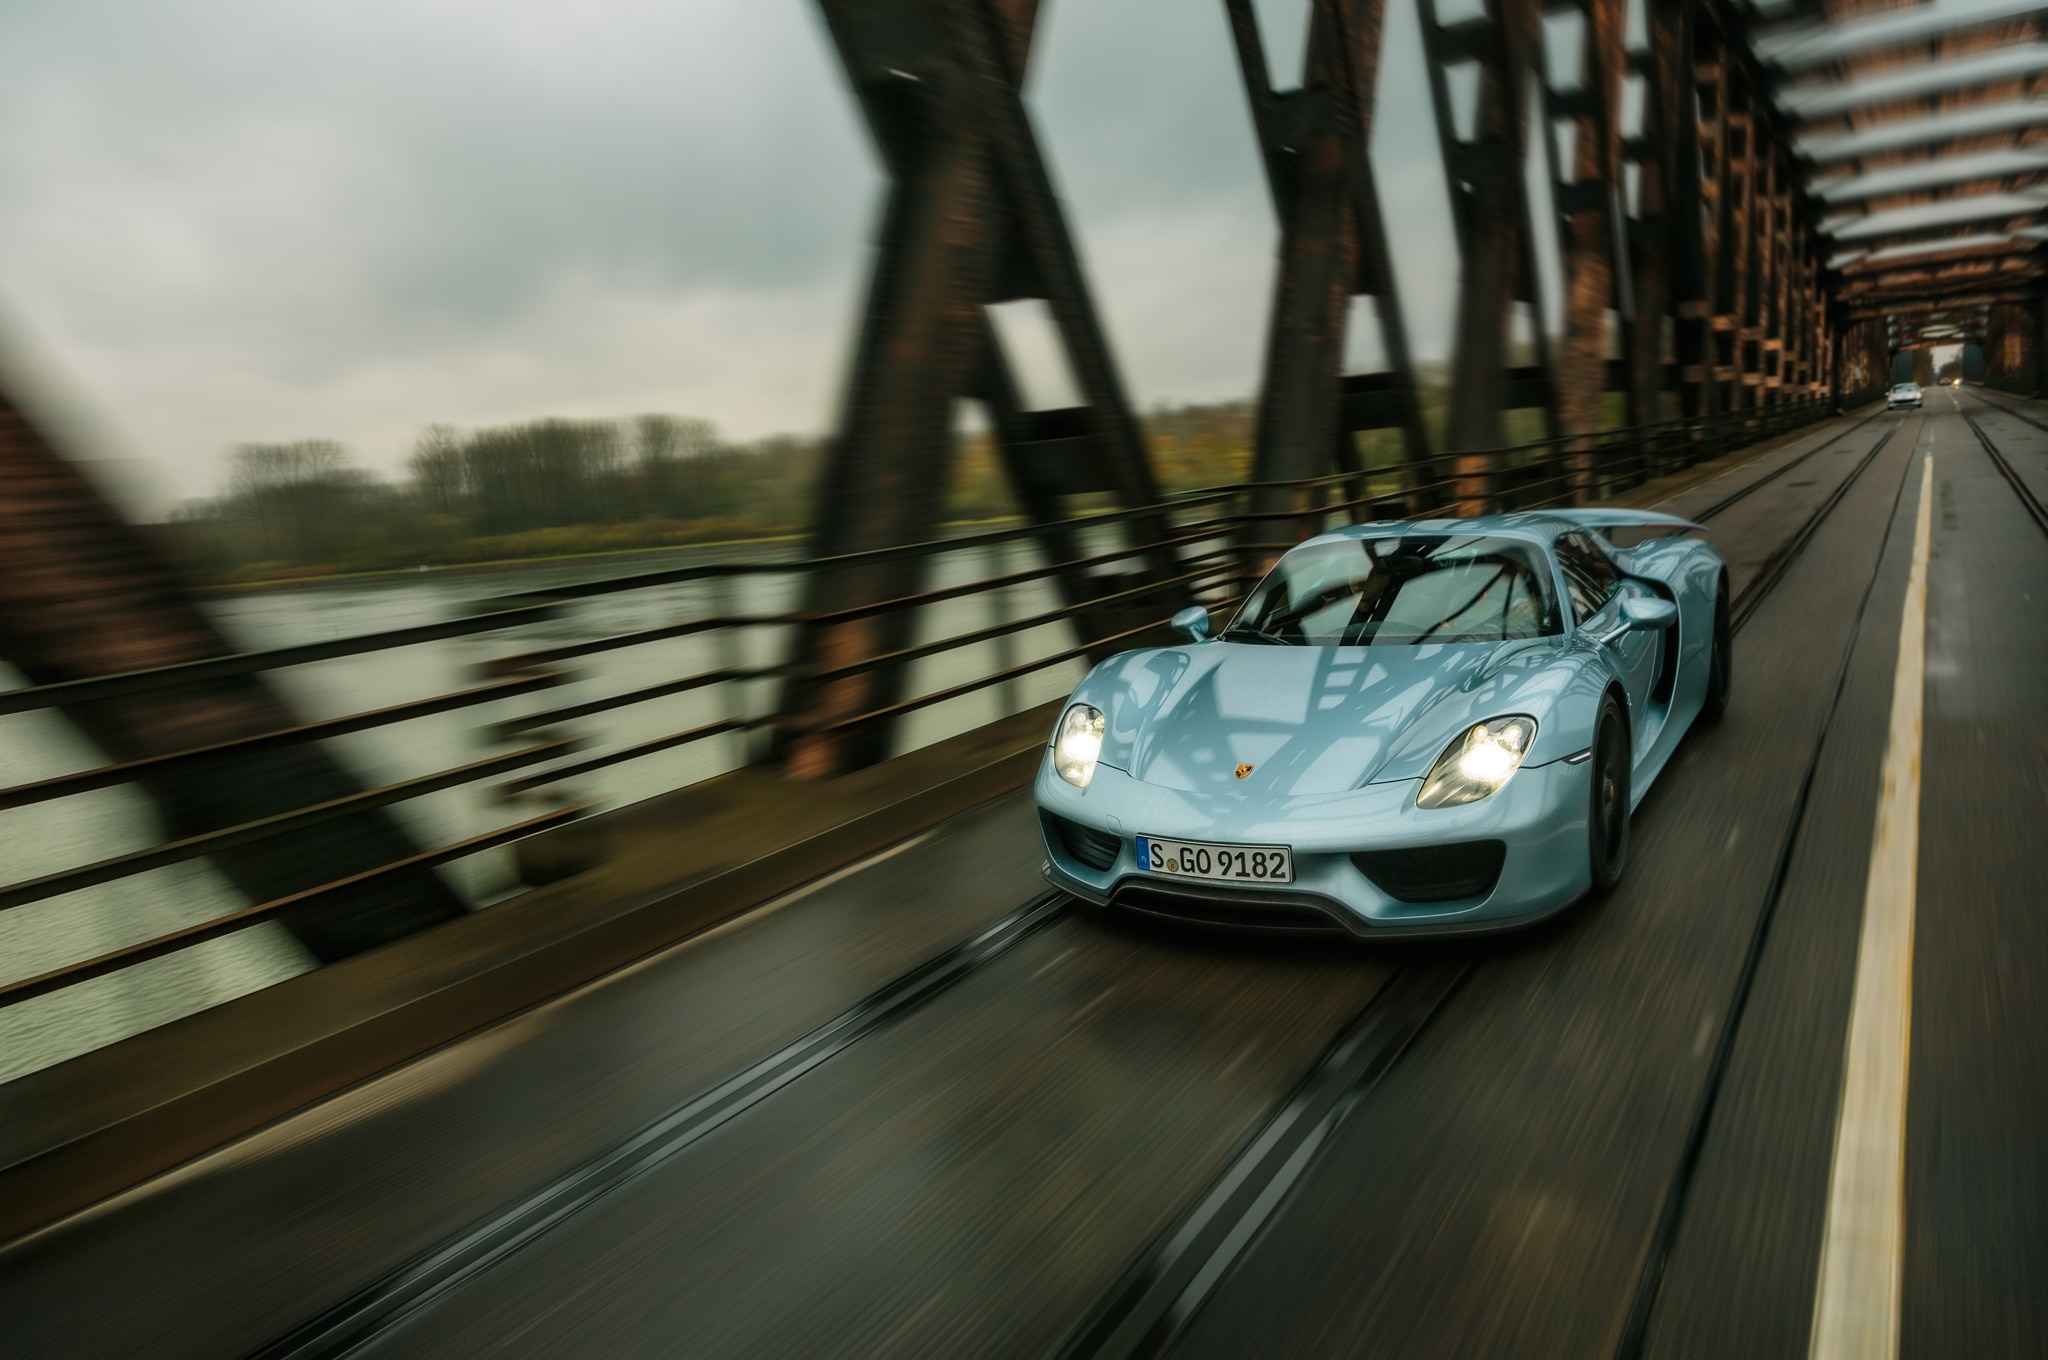 2014 Porsche 918 Spyder In Germany Front Three Quarter Over Bridge